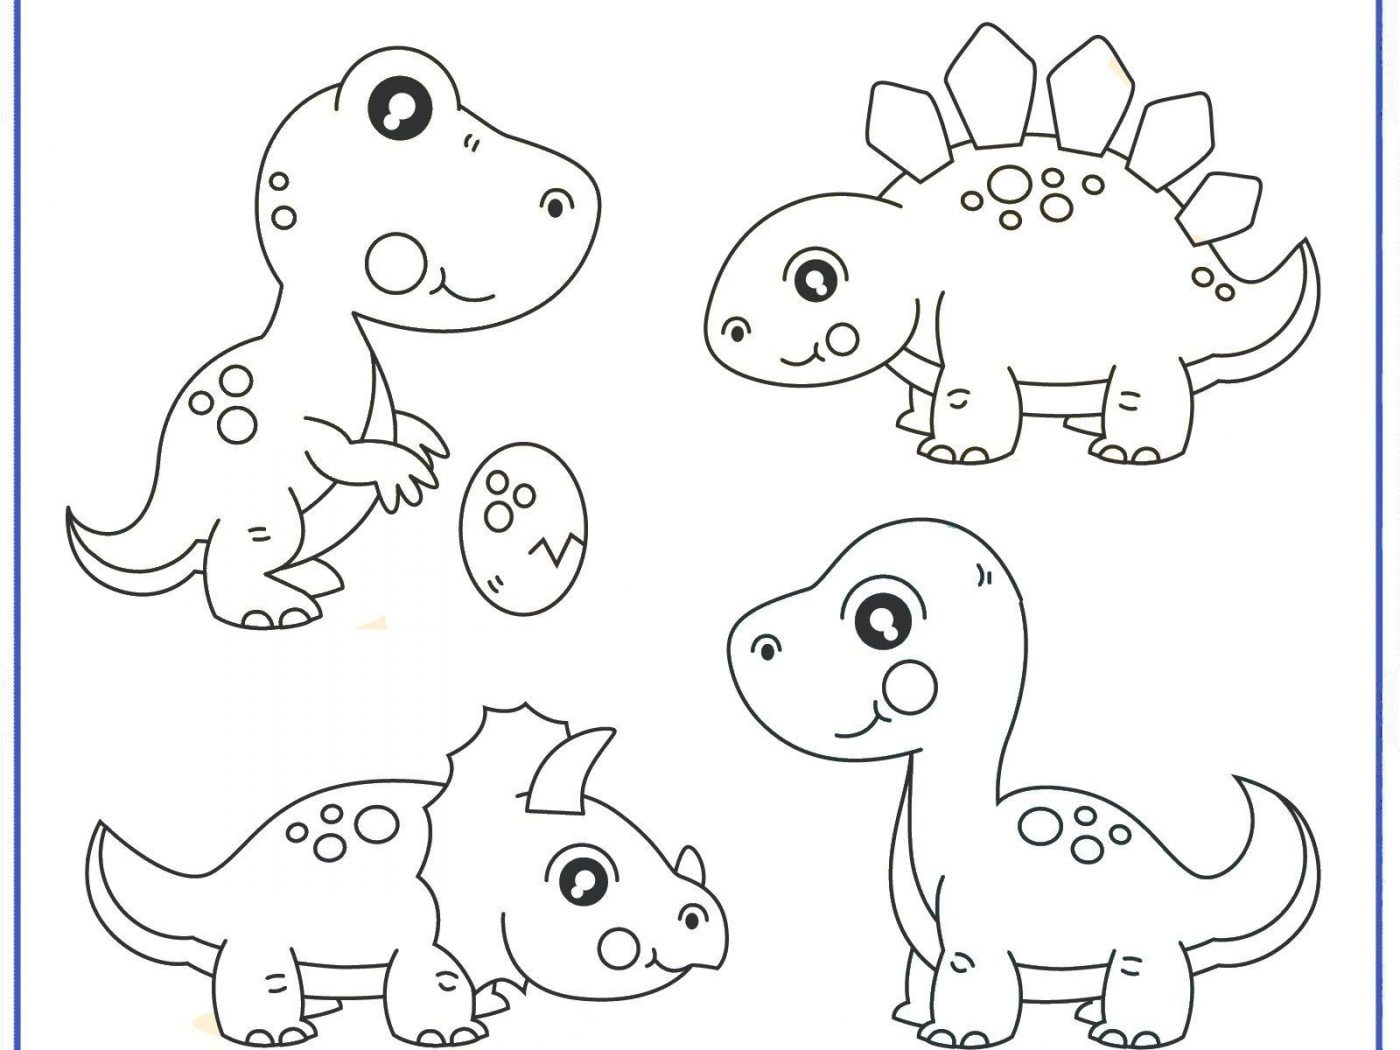 Coloring Pages Printable Dinosaur Coloring Pages Dinosaurg Pictures Preschool For Kids To Color Free